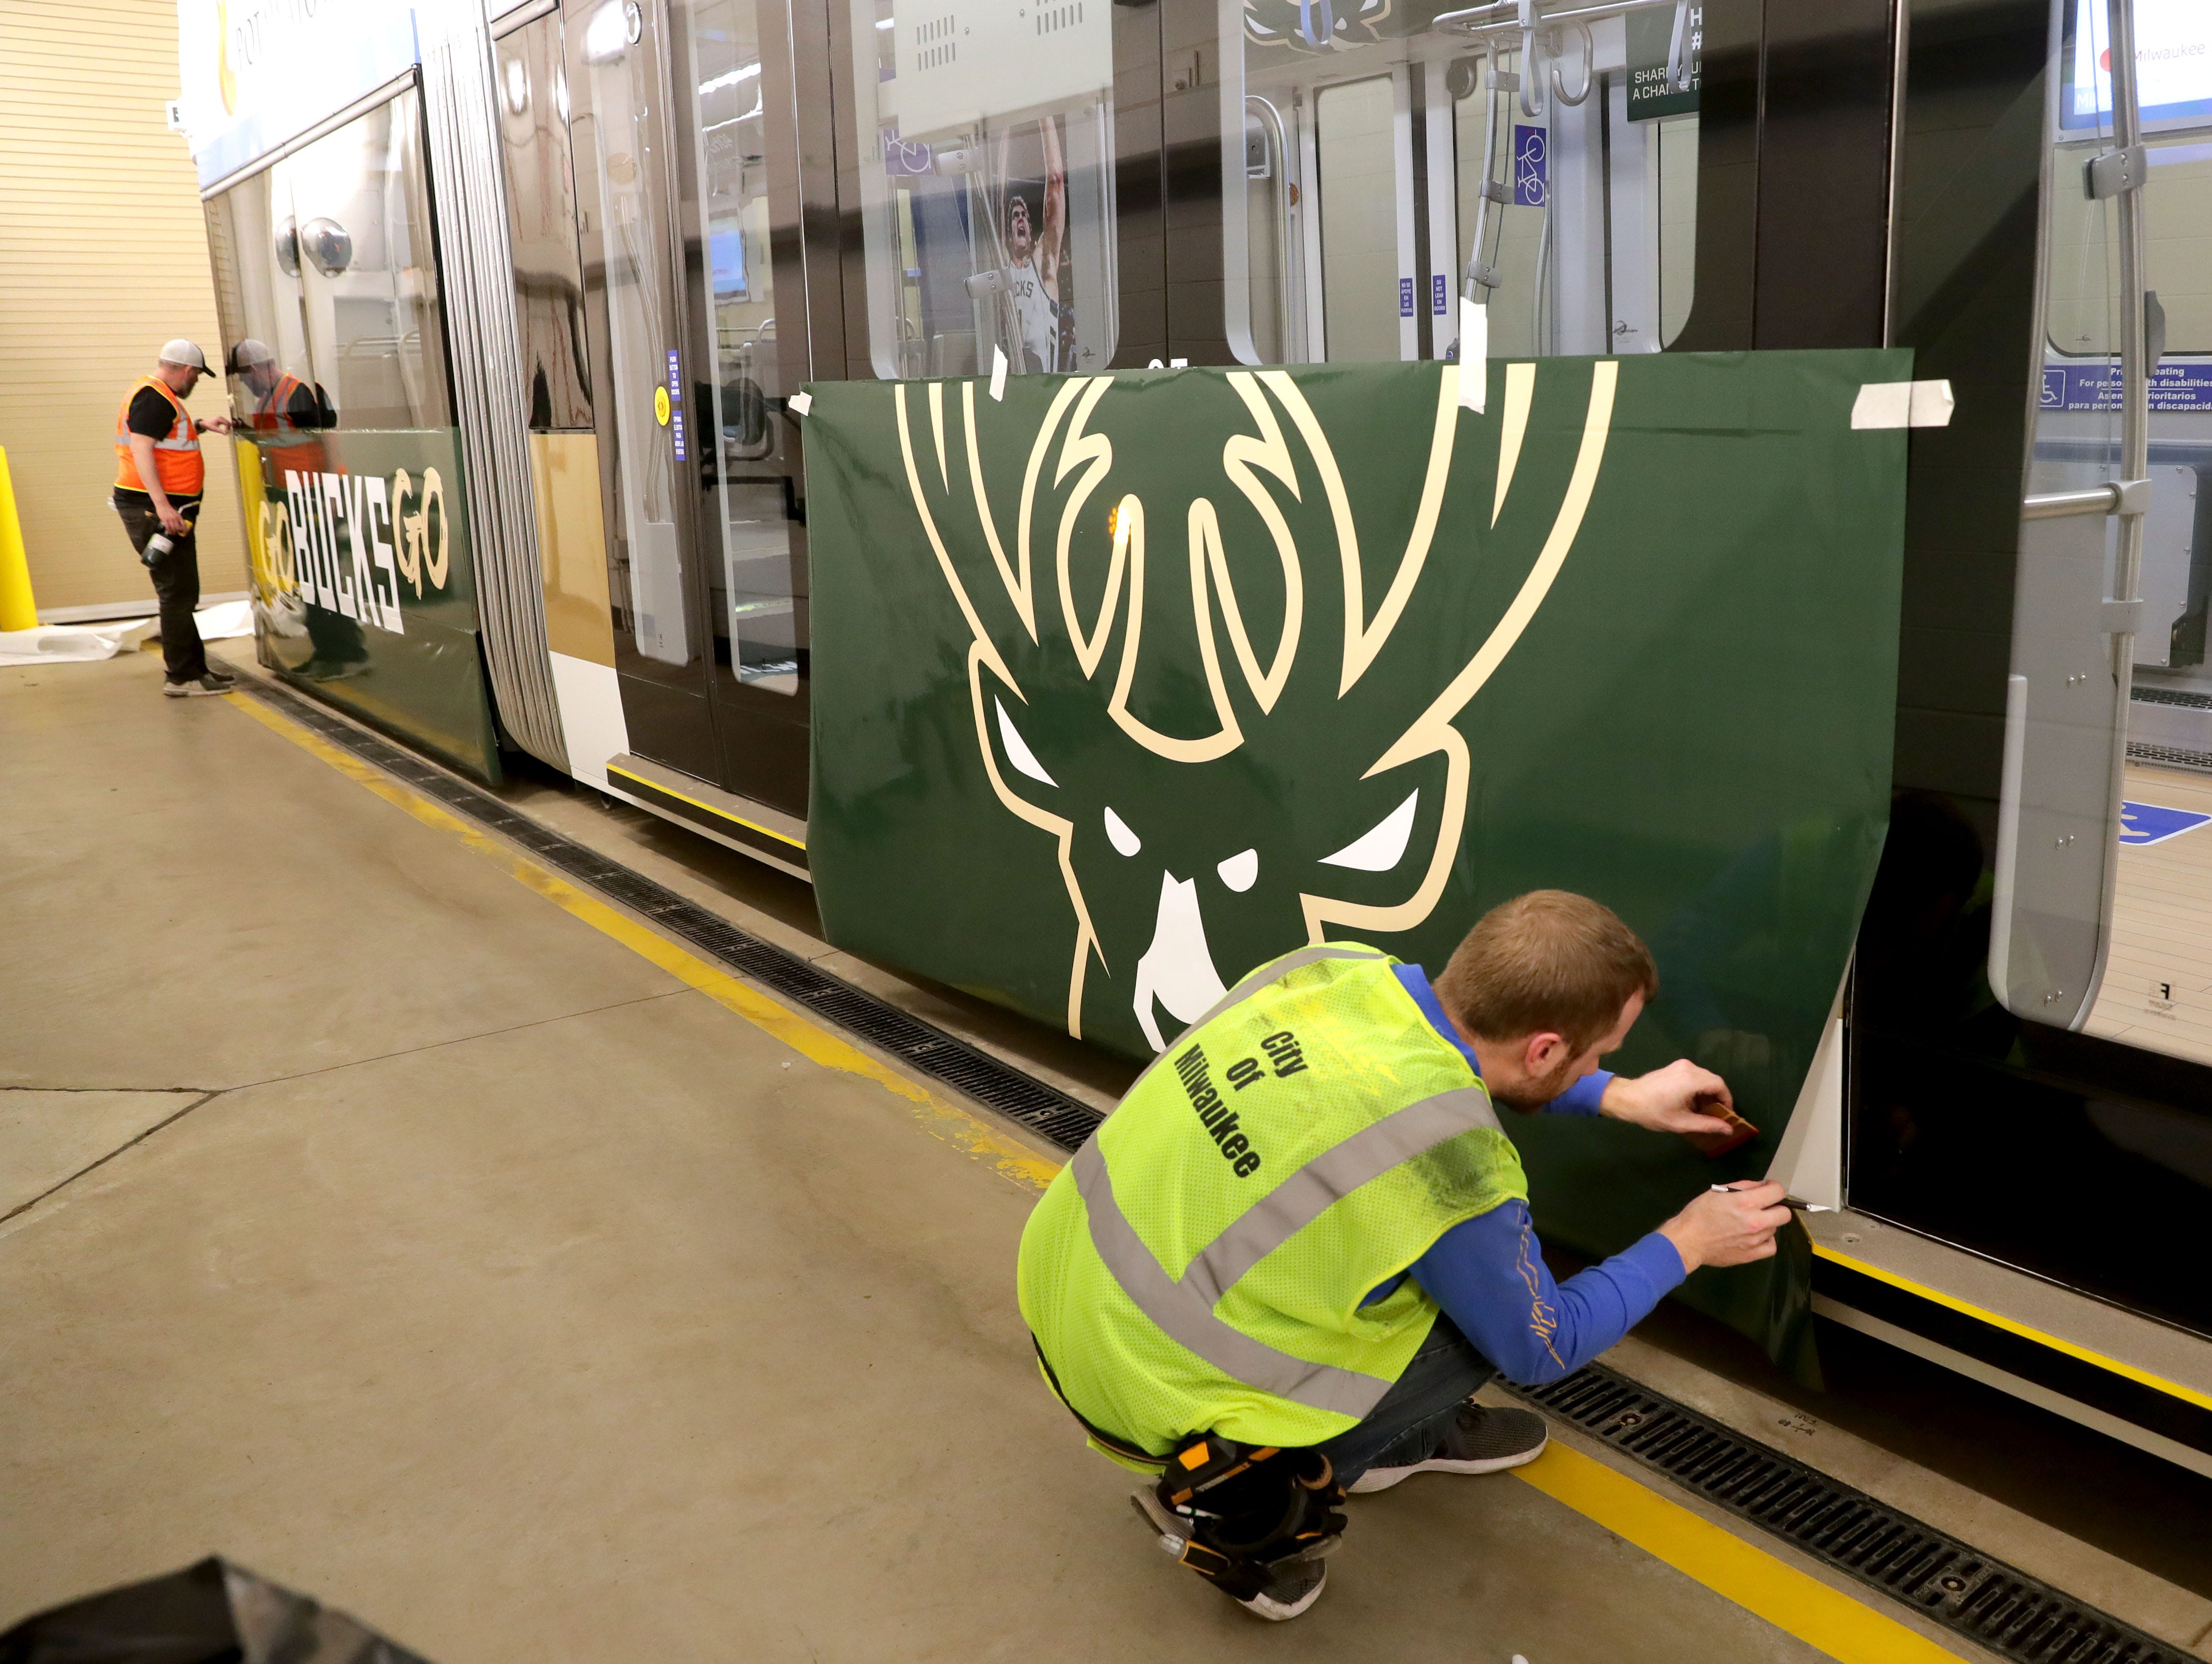 (OK FOR FRIDAY 4/12 PRINT - ONLINE EMBARGO UNTIL 10:45 FRIDAY 4/12)Troy Heinzel with Signs and Lines by Stretch work on attaching a logo to the outside of the streetcar.  One of Milwaukee's streetcars, known as The Hop is wrapped in Milwaukee Bucks colors in support of the Bucks playoff run in Milwaukee on Thursday, April 11, 2019. In addition to the exterior flair, the interior has been fitted with a replica Bucks court on the floor complete with life-size player footprints.   Photo by Mike De Sisti/Milwaukee Journal Sentinel